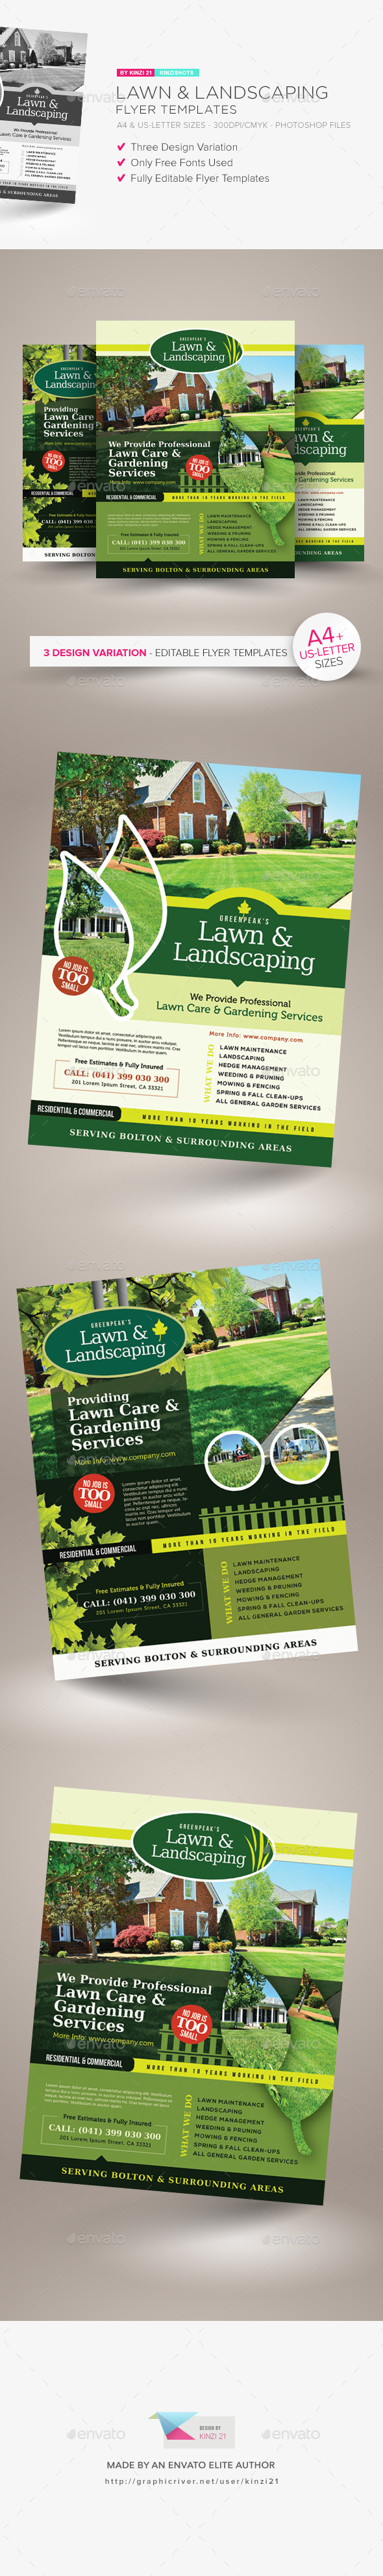 Lawn Landscaping Flyer Templates By Kinzishots GraphicRiver - Landscaping flyer templates